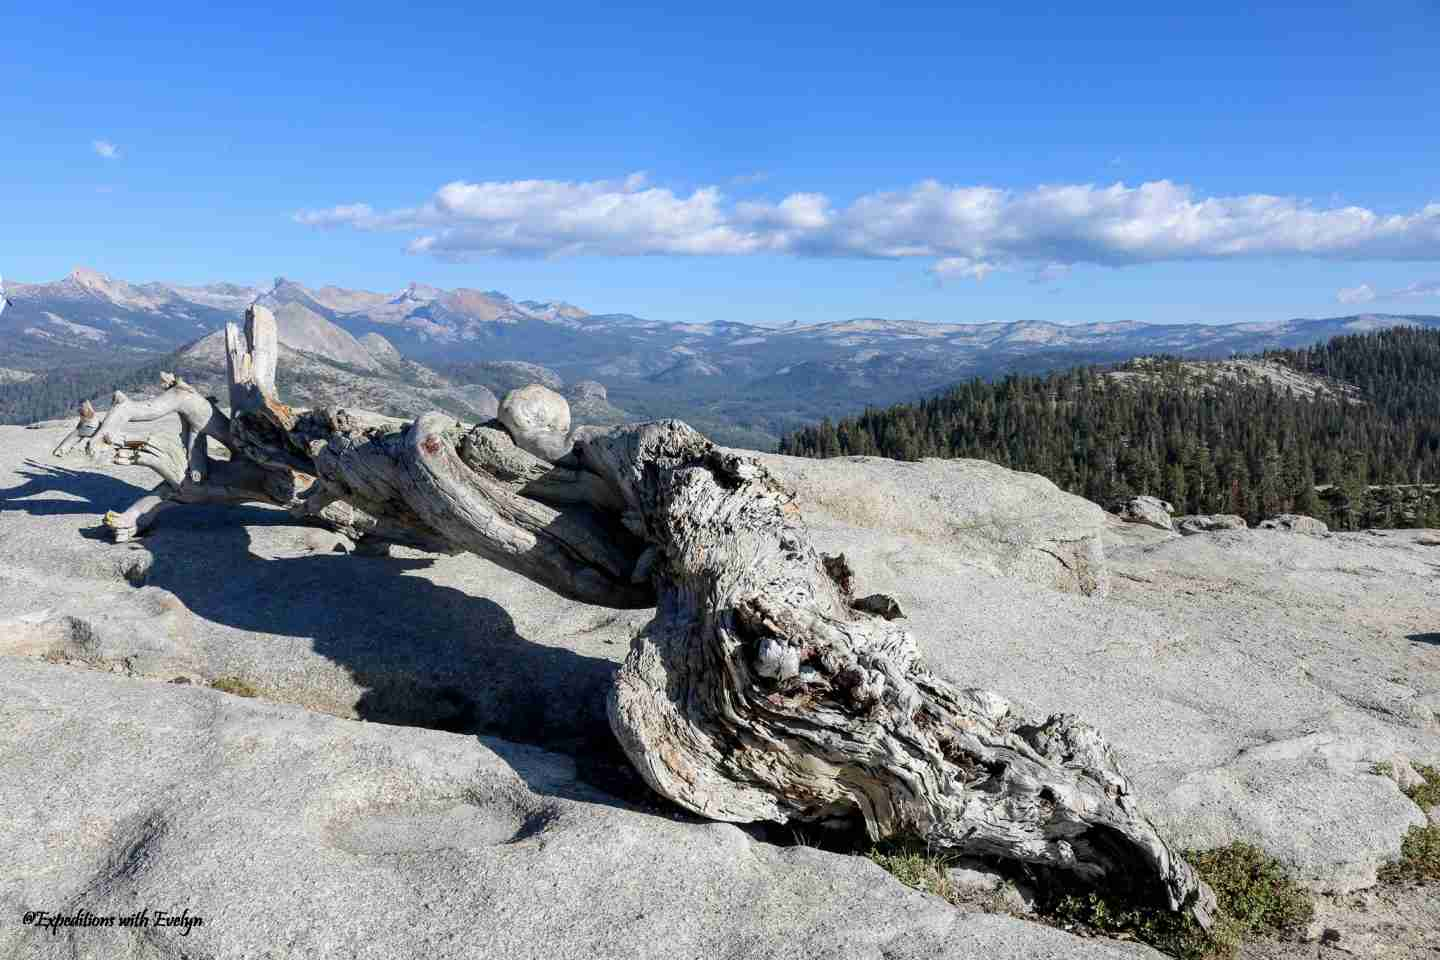 The is the best hike in the world for the least effort.  A fallen Jeffrey Pine lays on granite with views of Yosemite mountains and forest behind.